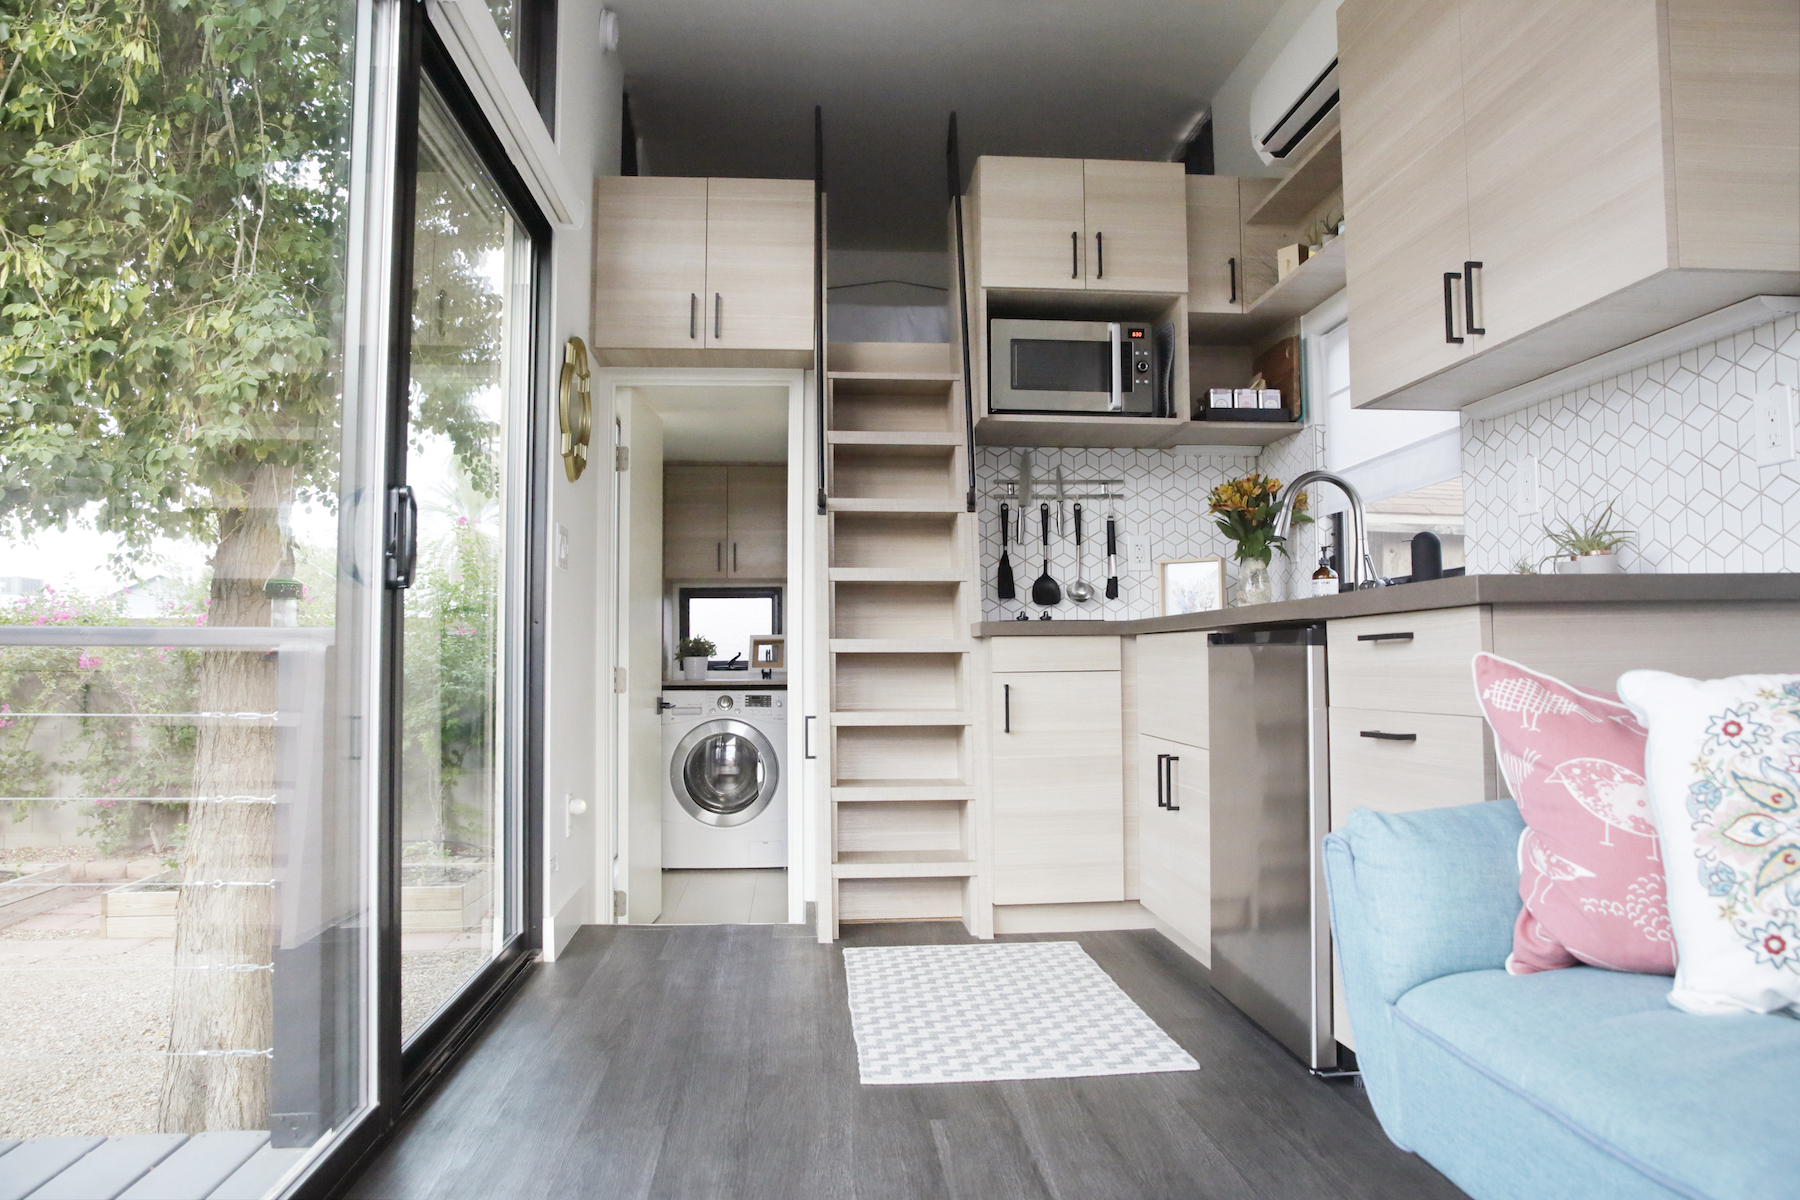 Space Saving Decor Ideas from Tiny Homes, cute tiny home